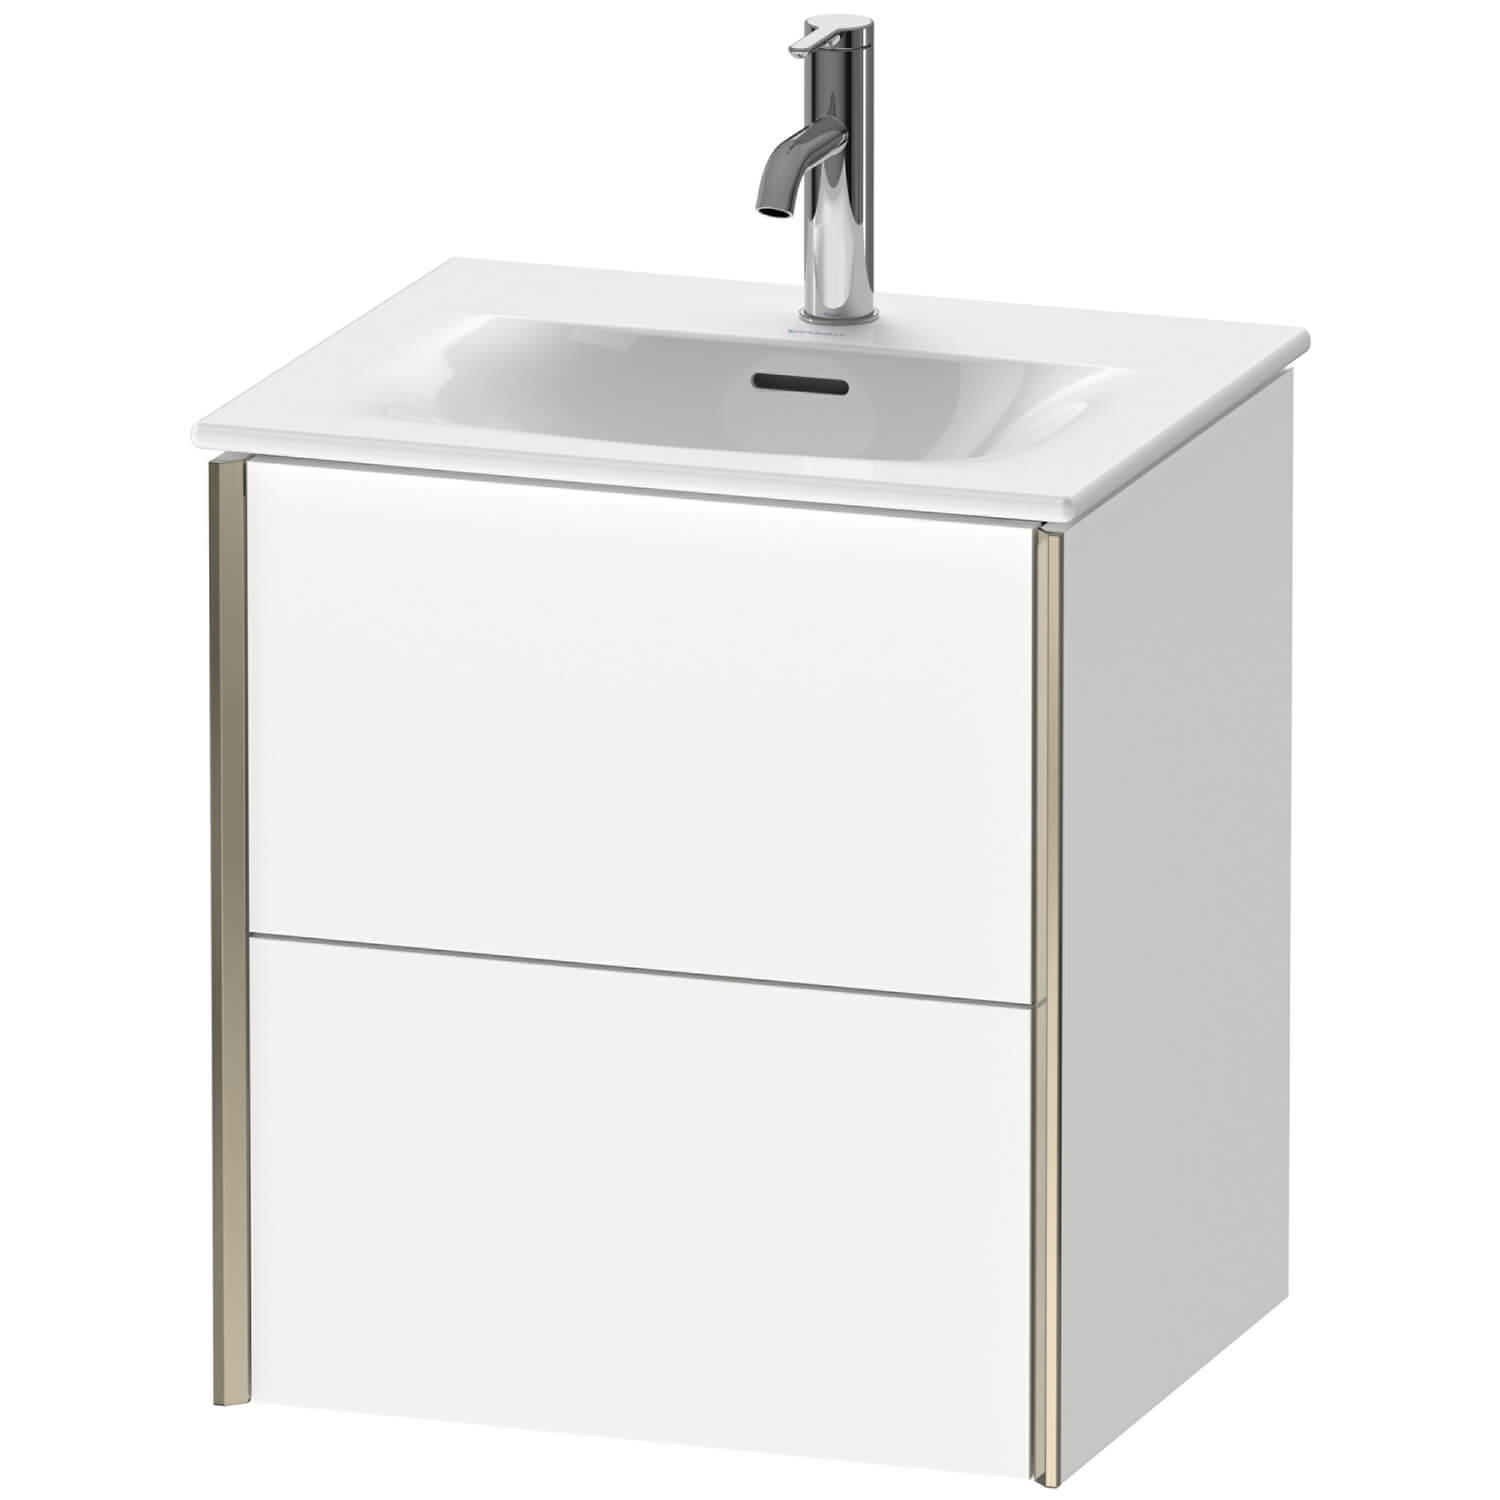 Duravit Xviu 510 x 420mm Double Drawer Wall Mounted Vanity Unit